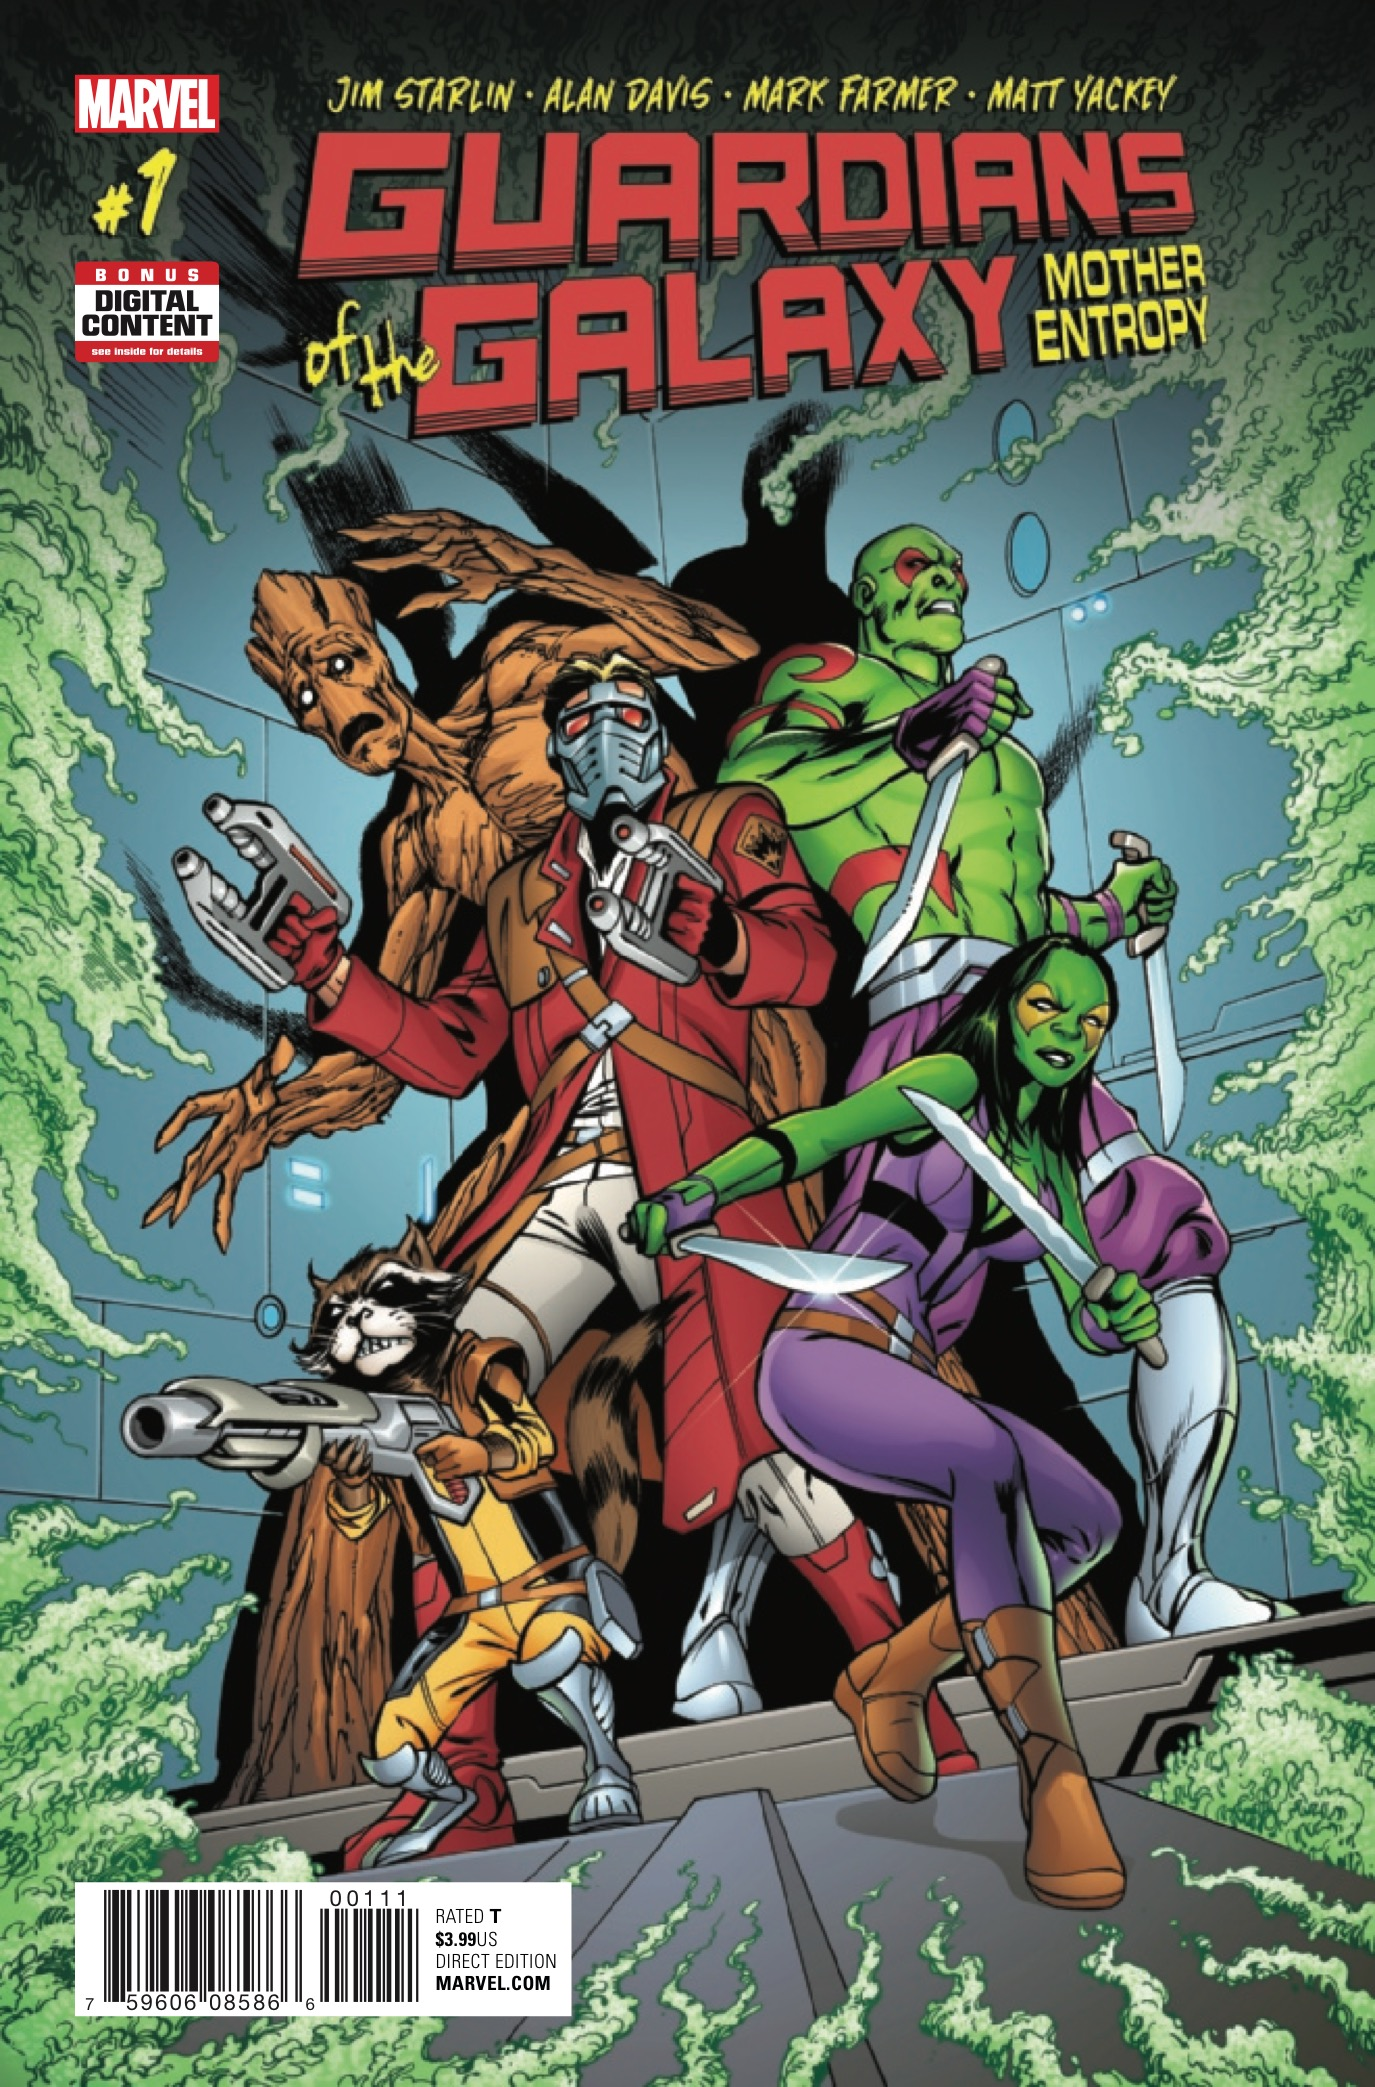 Guardians of the Galaxy: Mother Entropy #1 Review